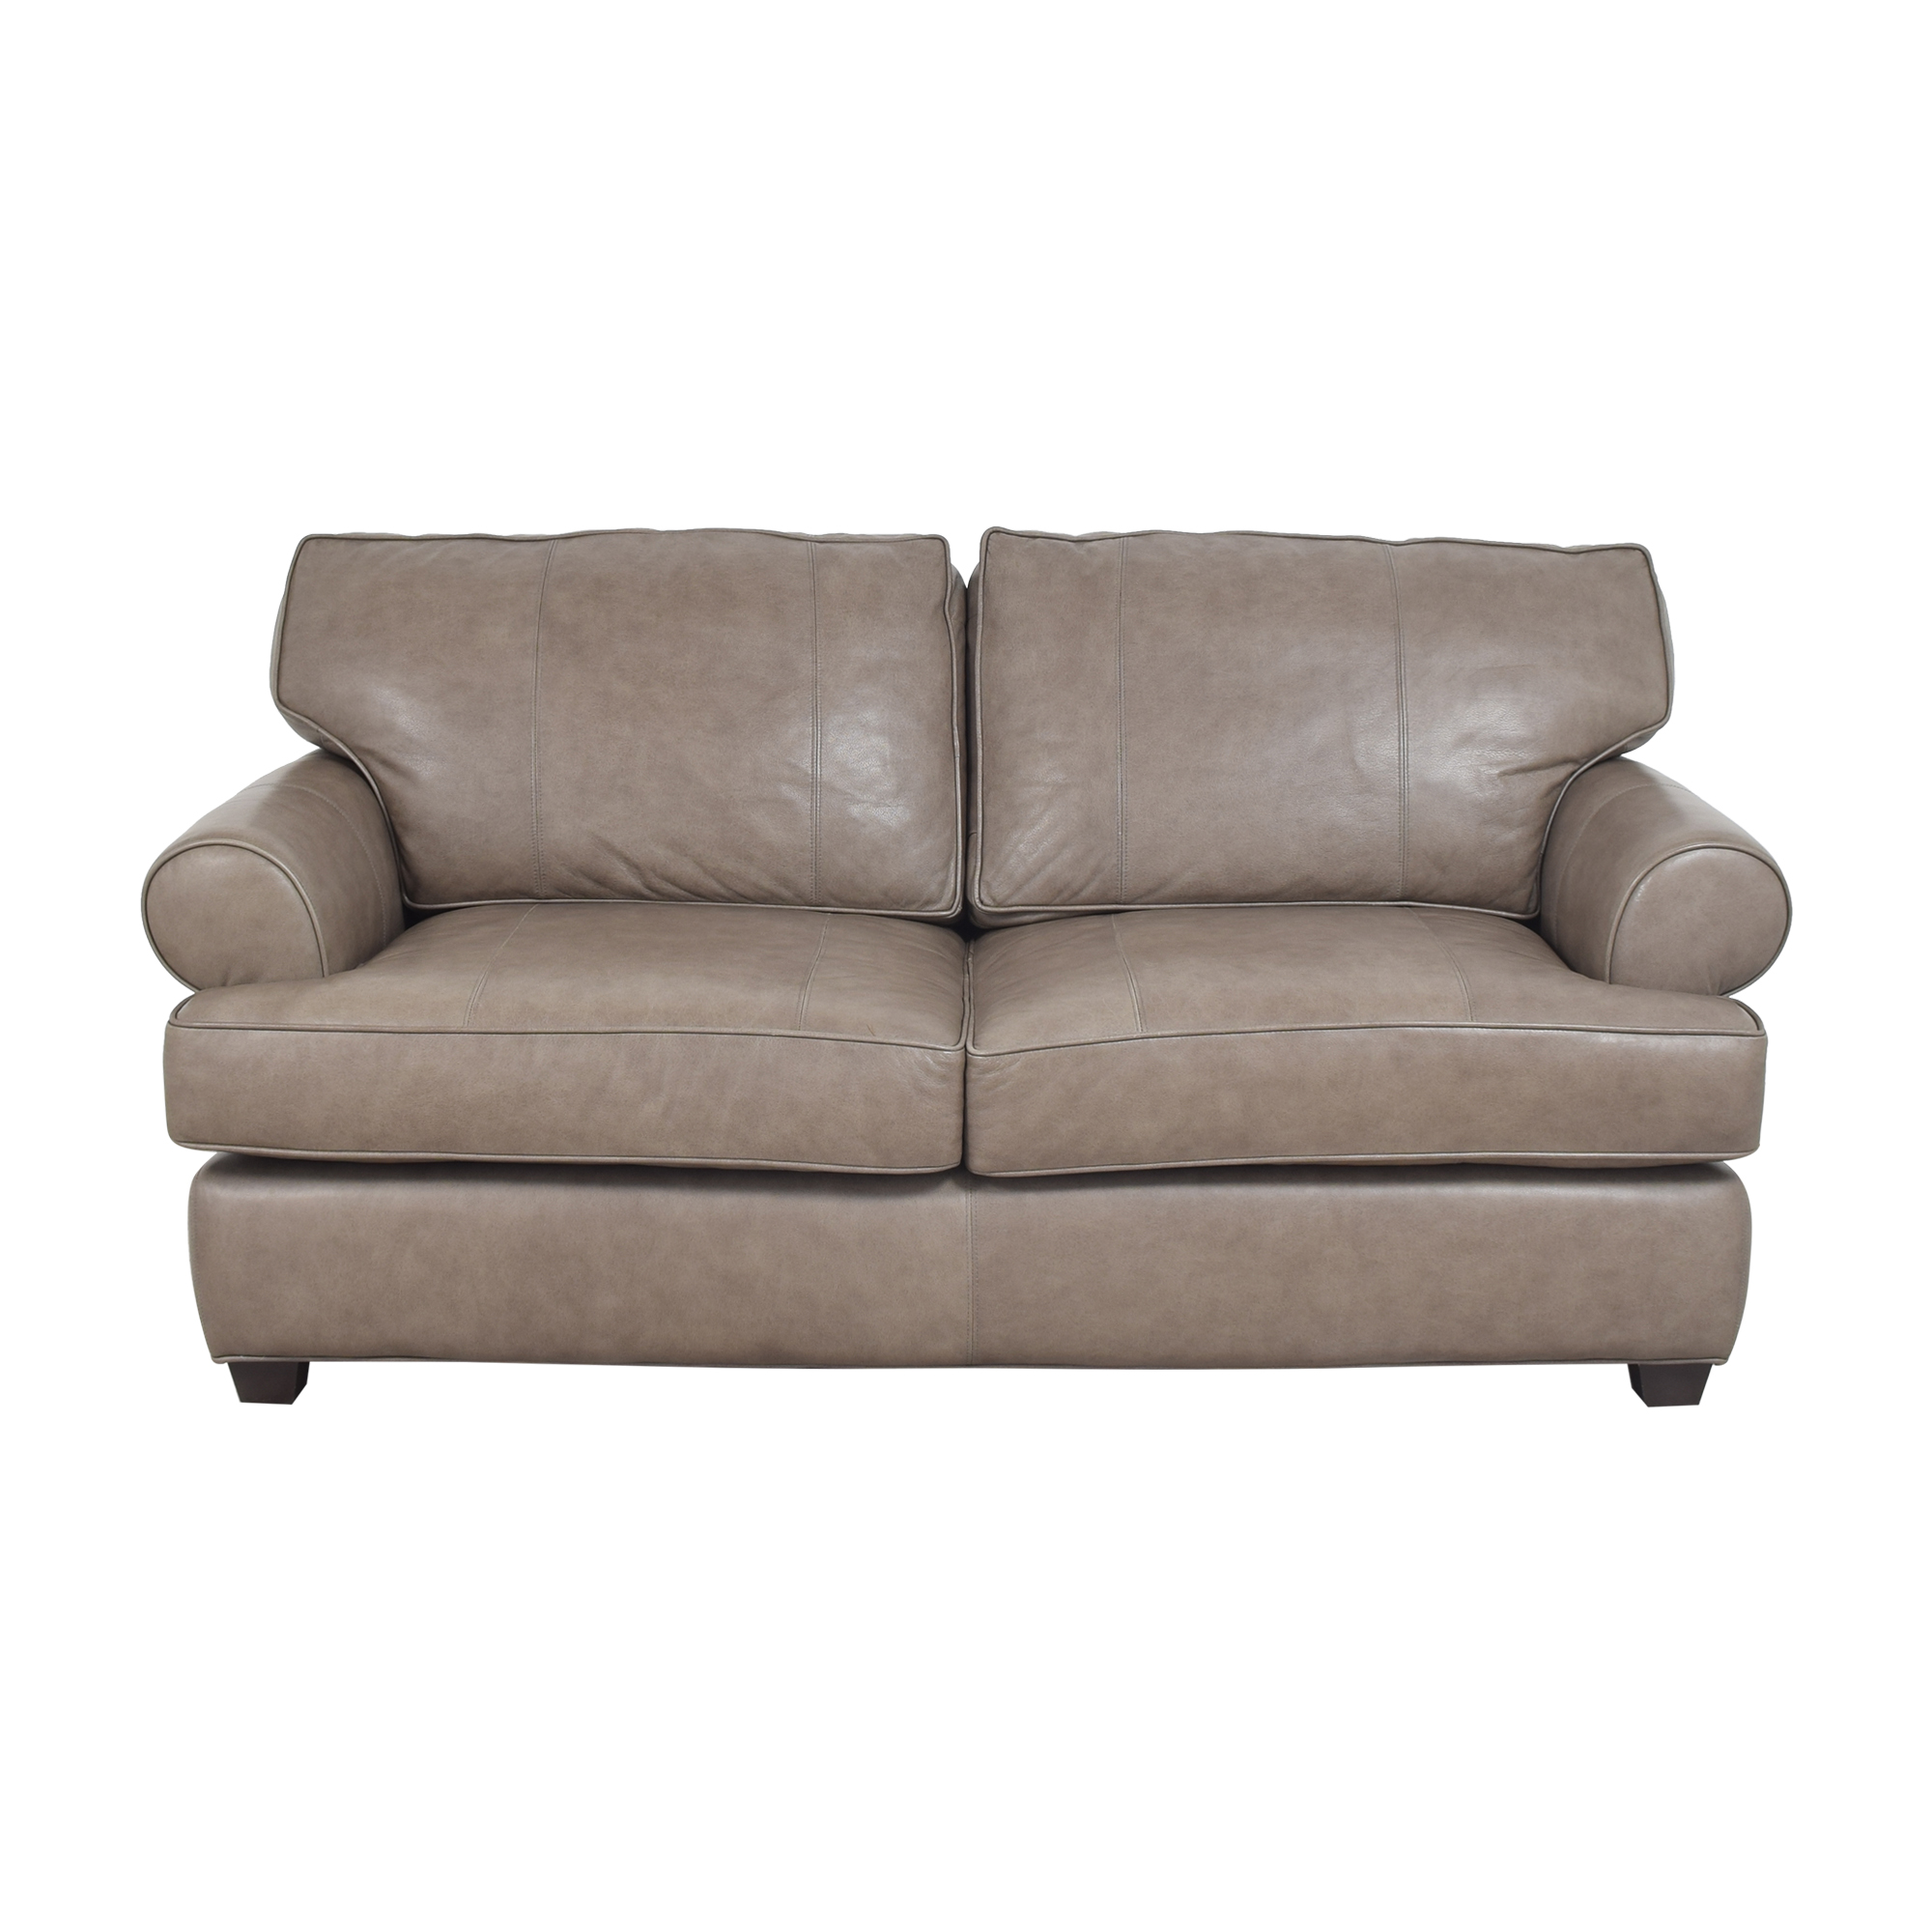 Arhaus Arhaus Hadley Roll Arm Loveseat grey